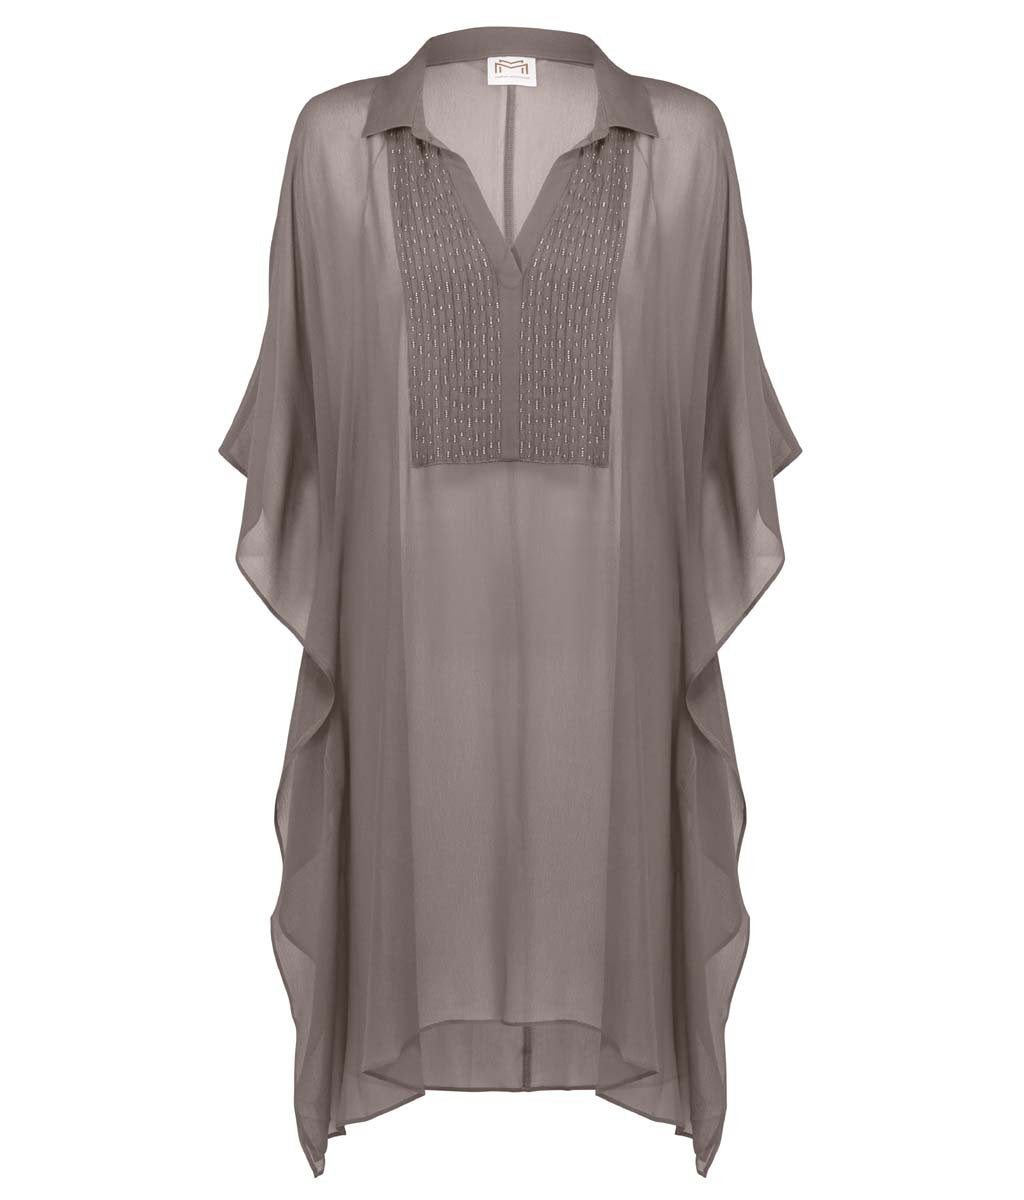 Maryan Mehlhorn 'Allure' (Taupe Cristal) Kaftan (Tunic) - Sandra Dee - Product Shot - Front